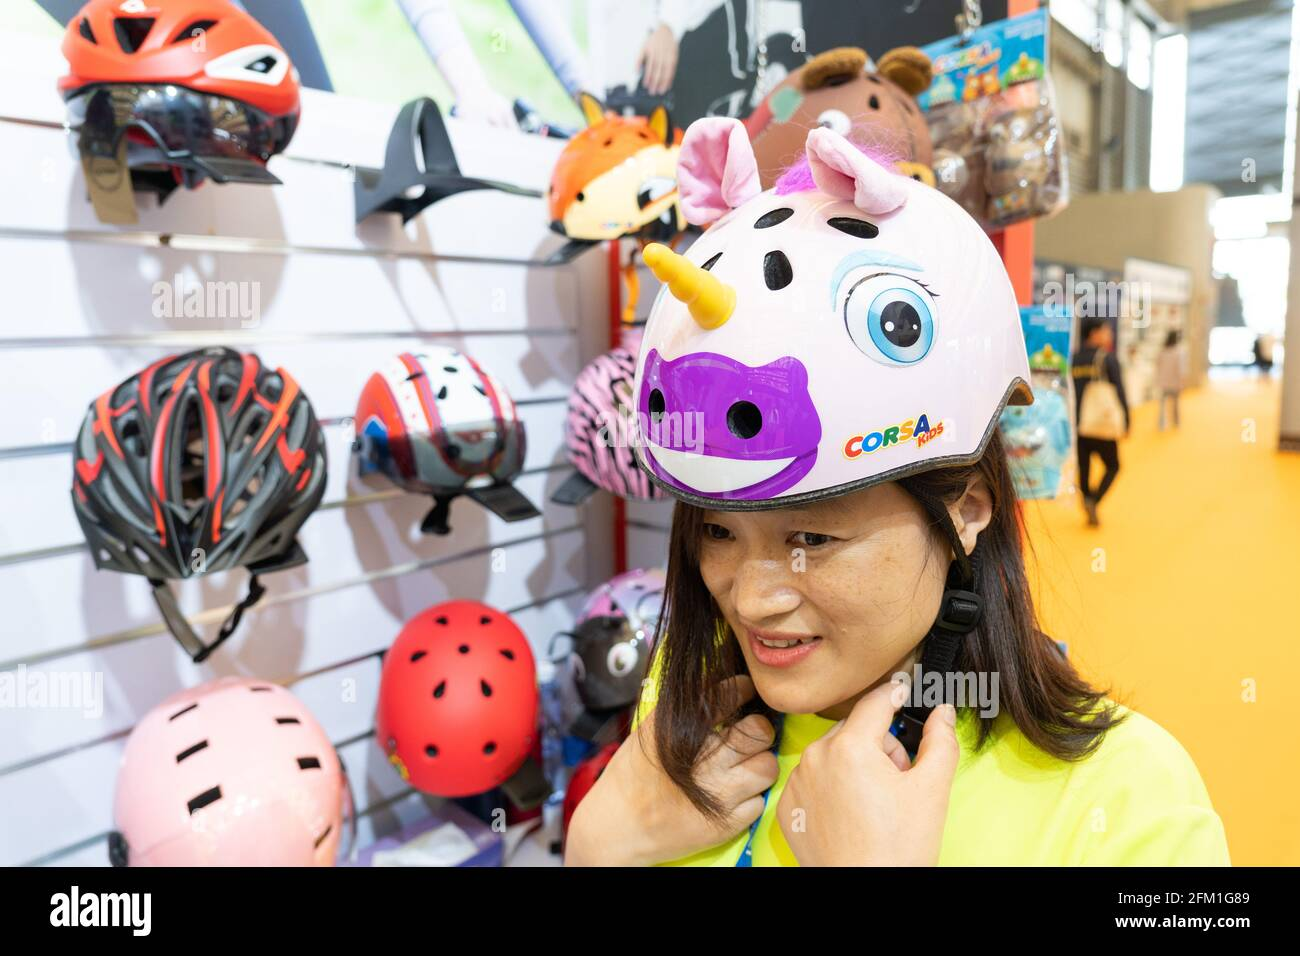 Shanghai. 5th May, 2021. A staff member displays a helmet shaped like a cartoon figure during the 30th China International Bicycle Fair in east China's Shanghai, May 5, 2021. The four-day event kicked off here on Wednesday, drawing more than 1,000 enterprises to participate. Credit: Cai Yang/Xinhua/Alamy Live News Stock Photo